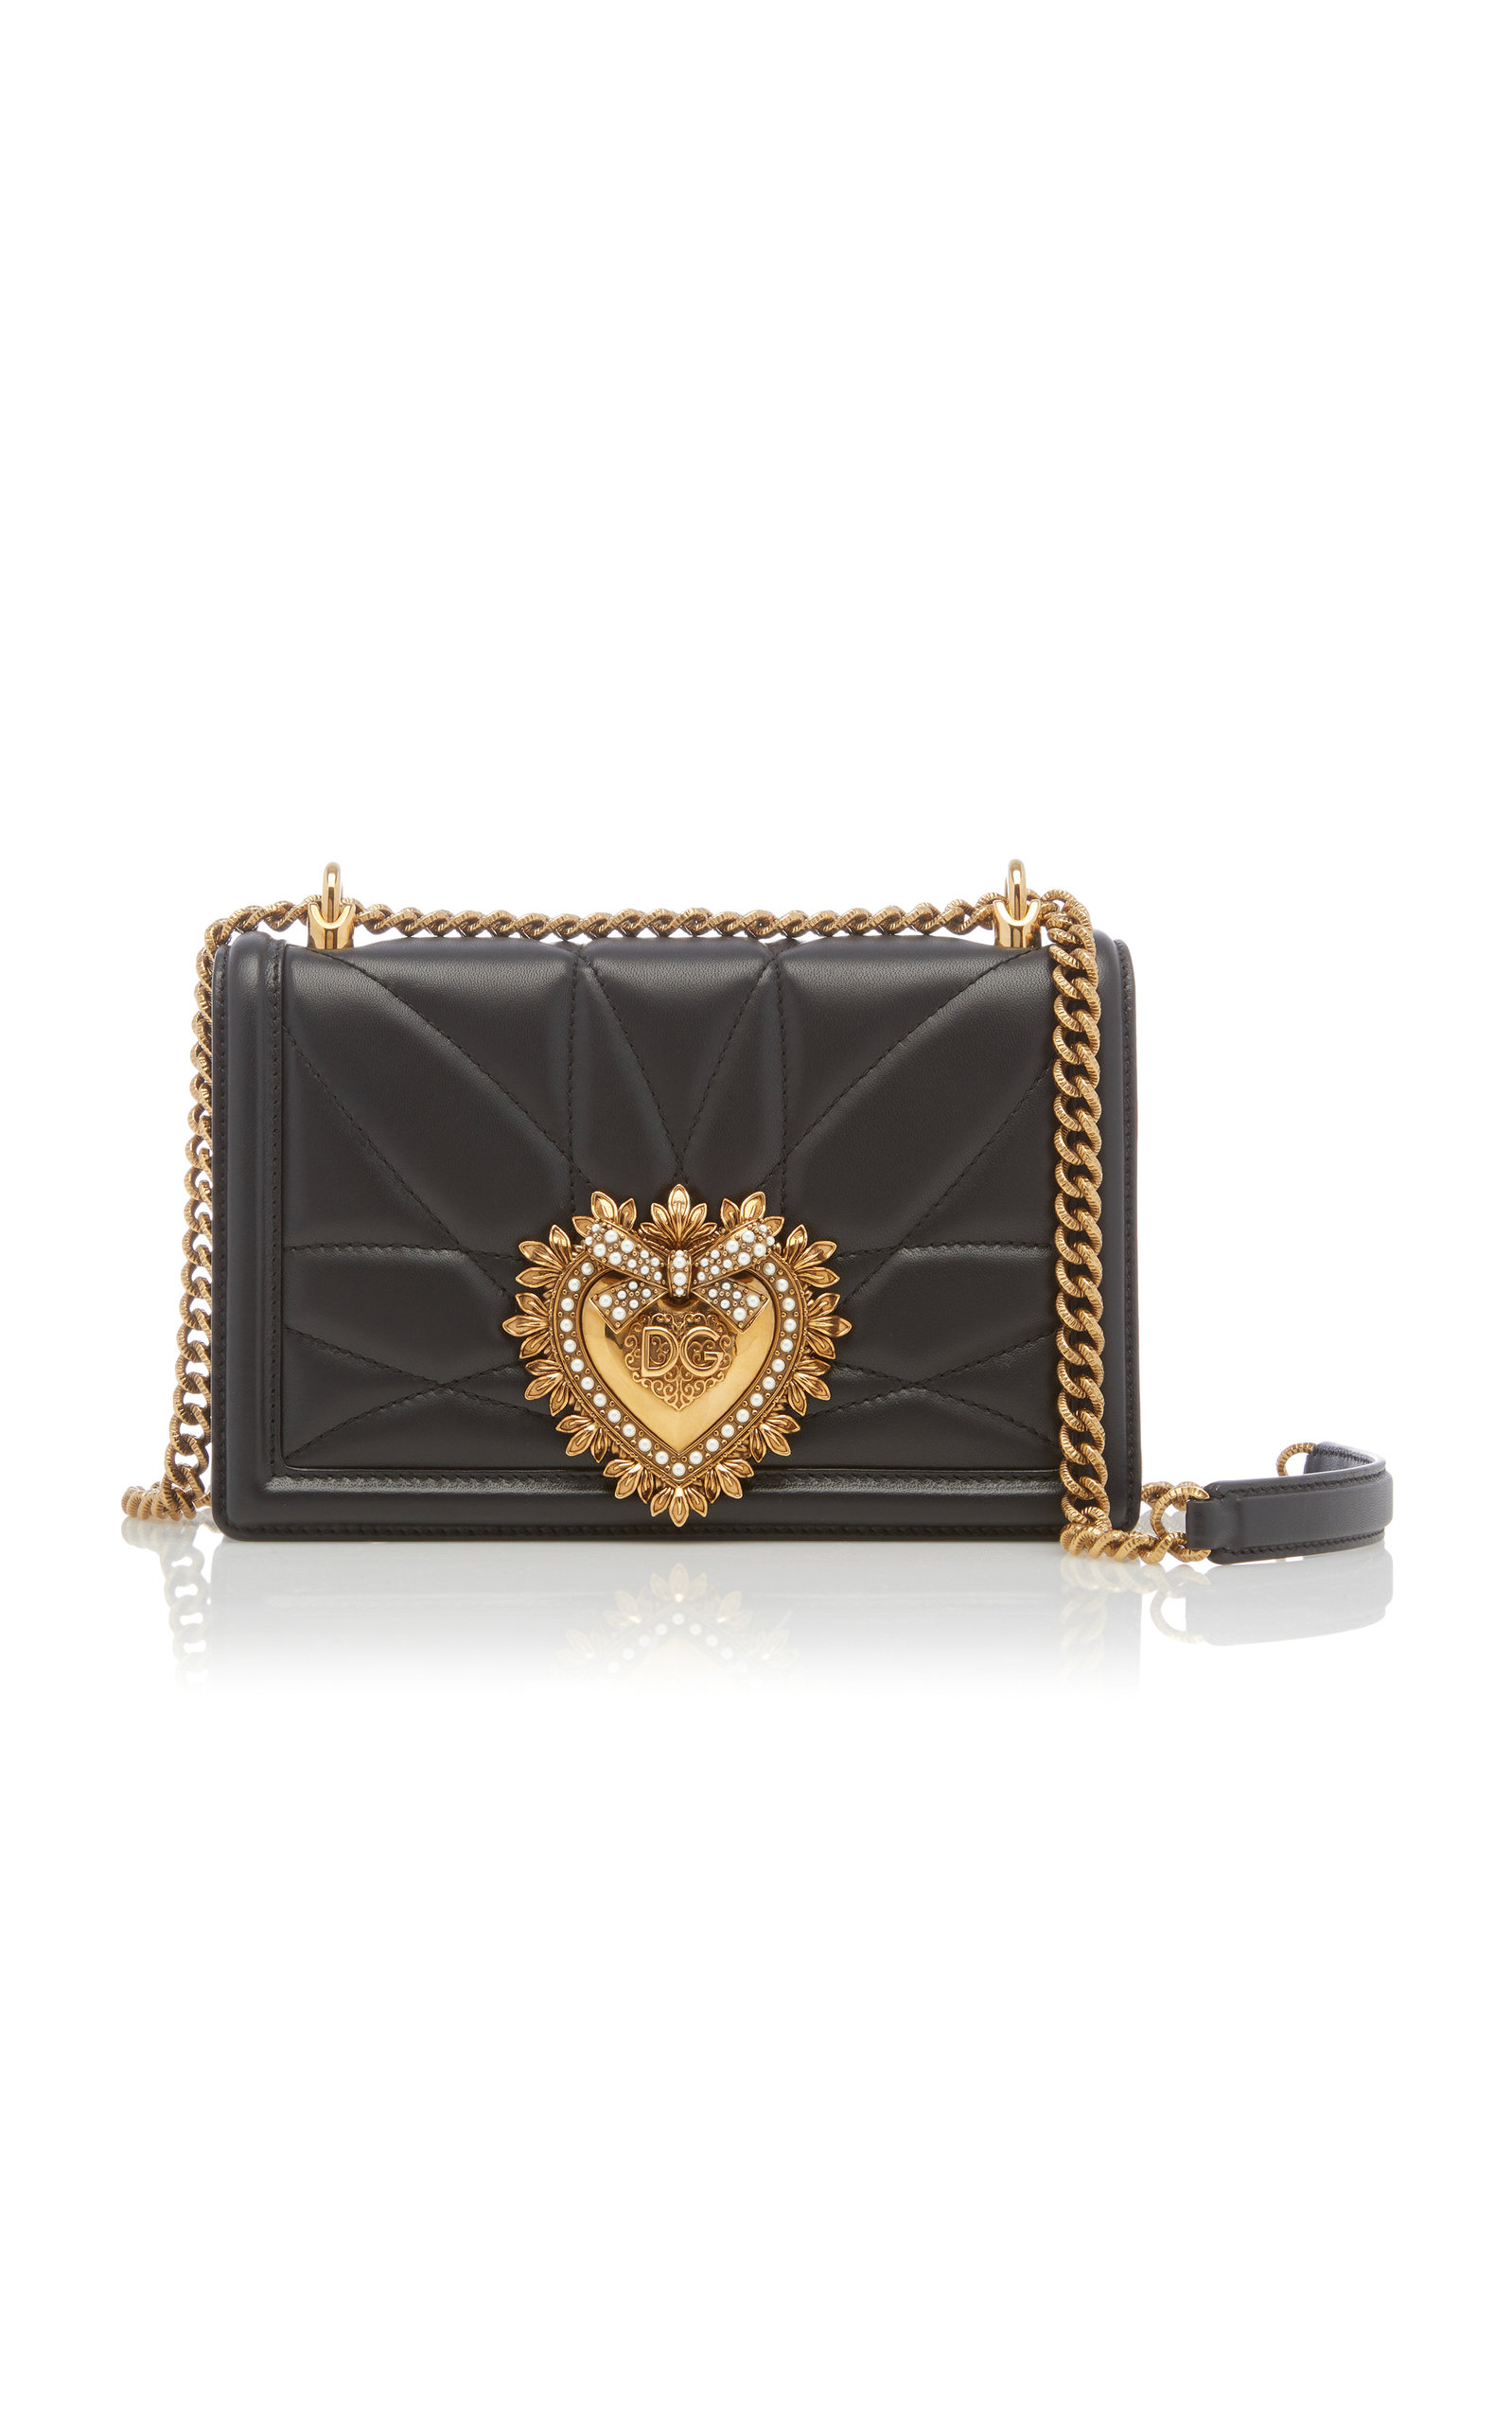 4e83c157ec Dolce & GabbanaDevotion Embellished Quilted Leather Shoulder Bag. CLOSE.  Loading